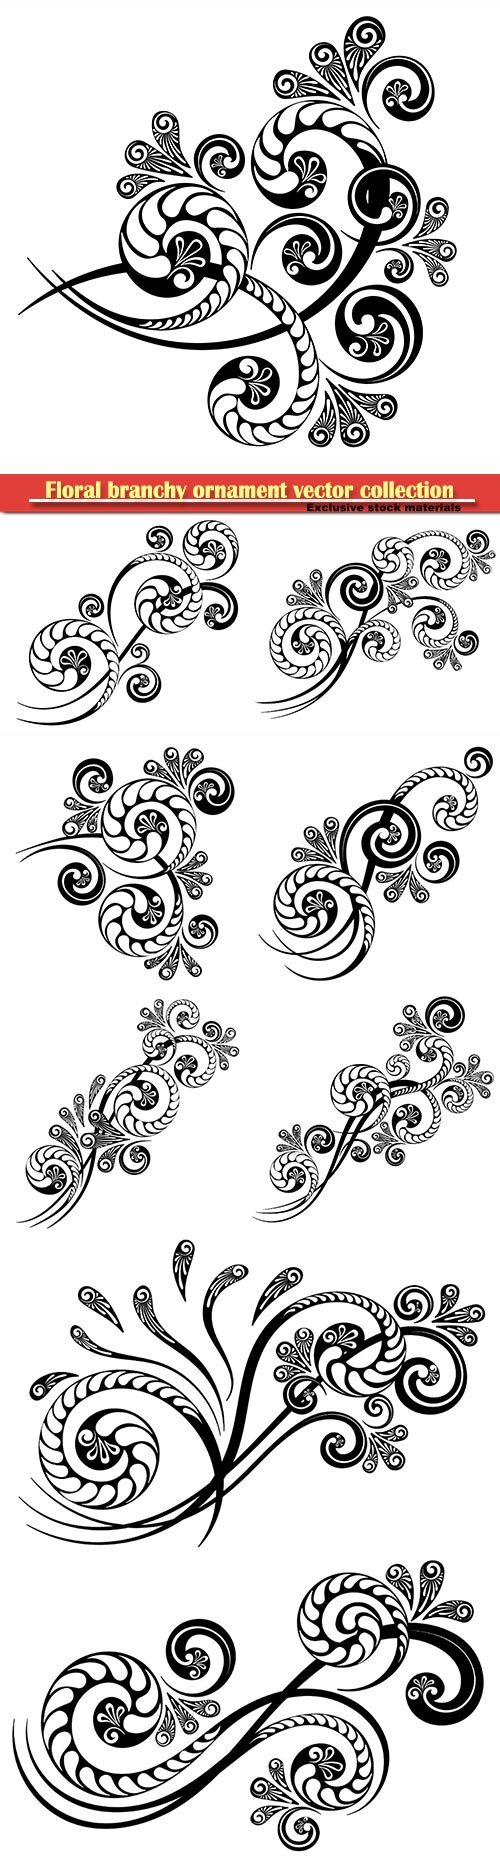 Floral branchy ornament with a beautiful complex pattern for decorative design of invitations, letters and greeting cards